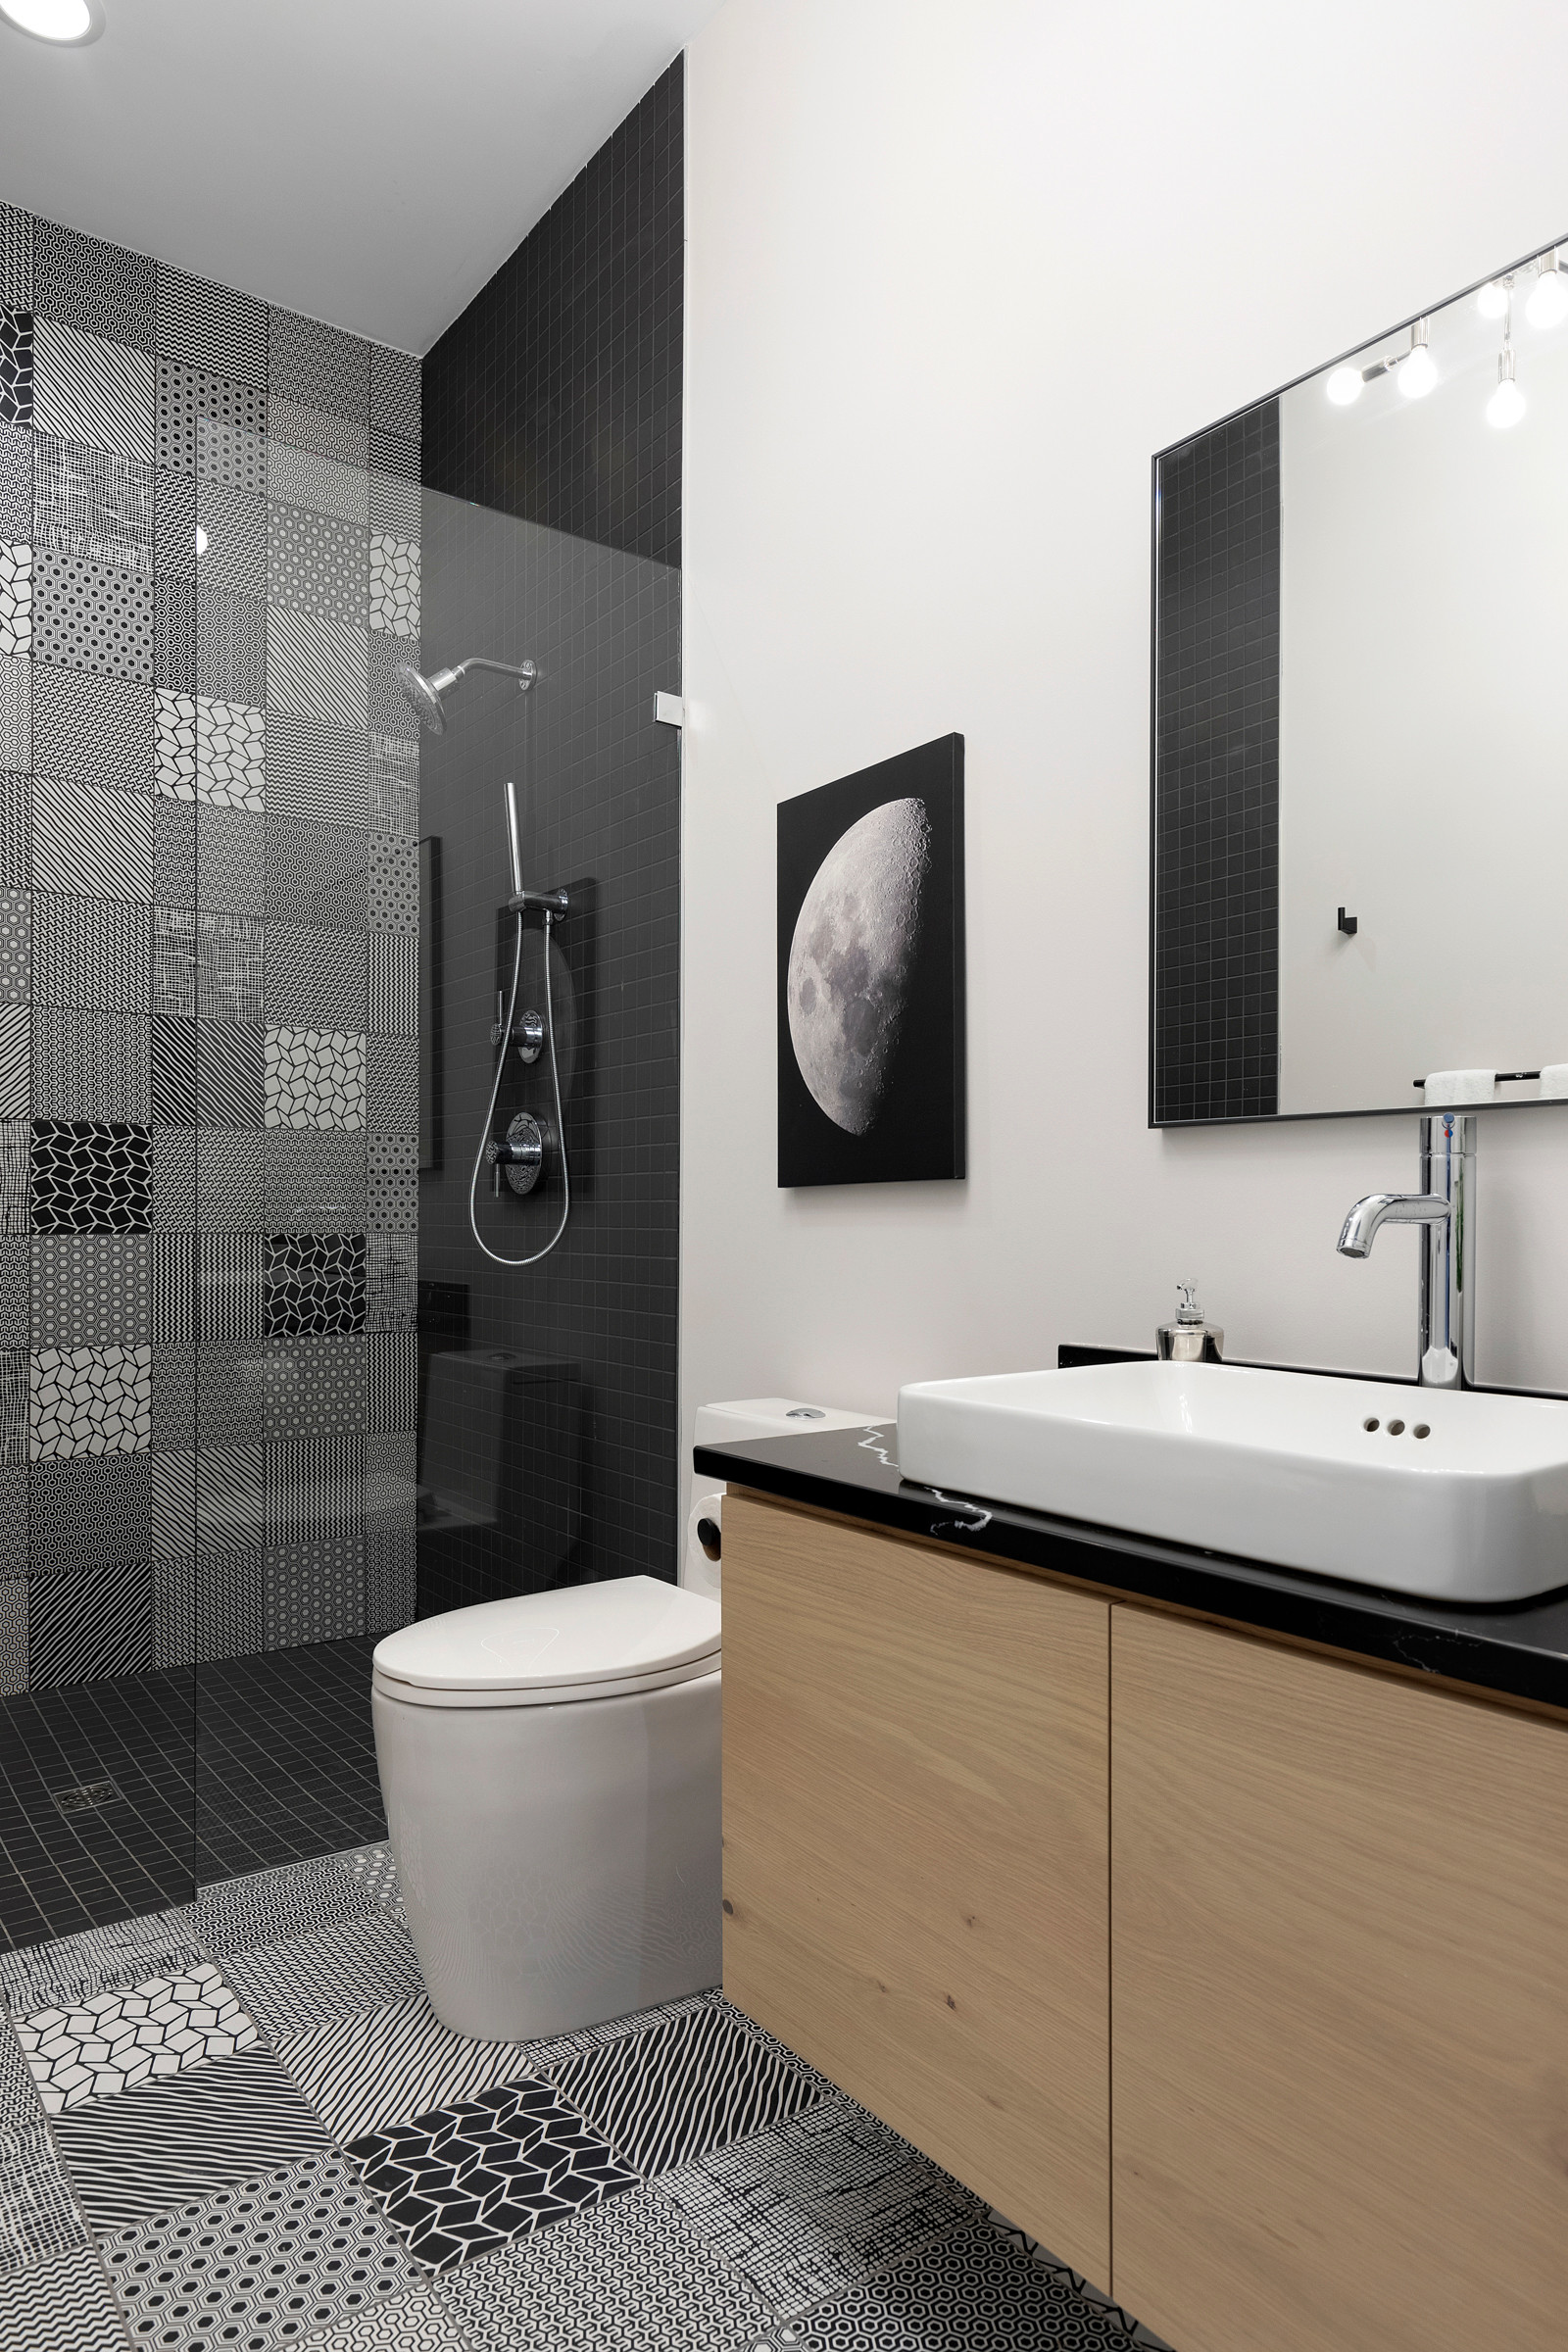 75 Beautiful Bathroom Pictures Ideas November 2020 Houzz